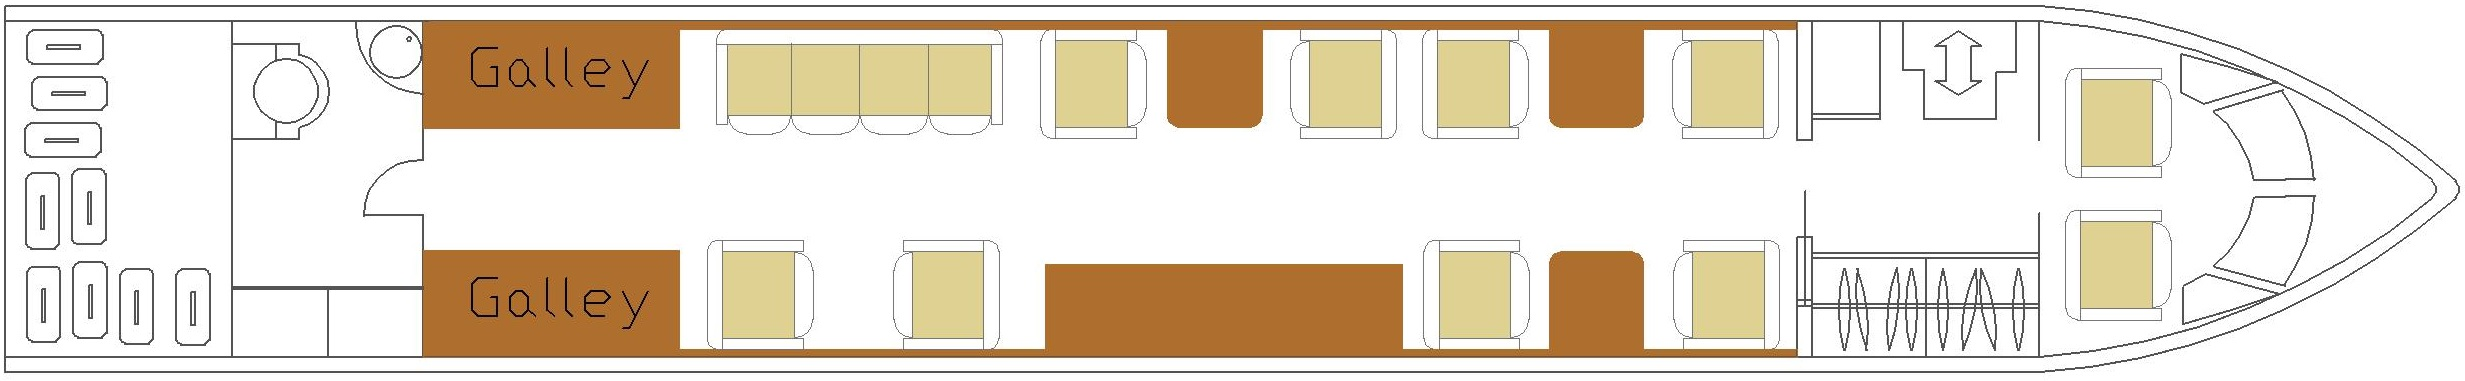 N200LC_layout